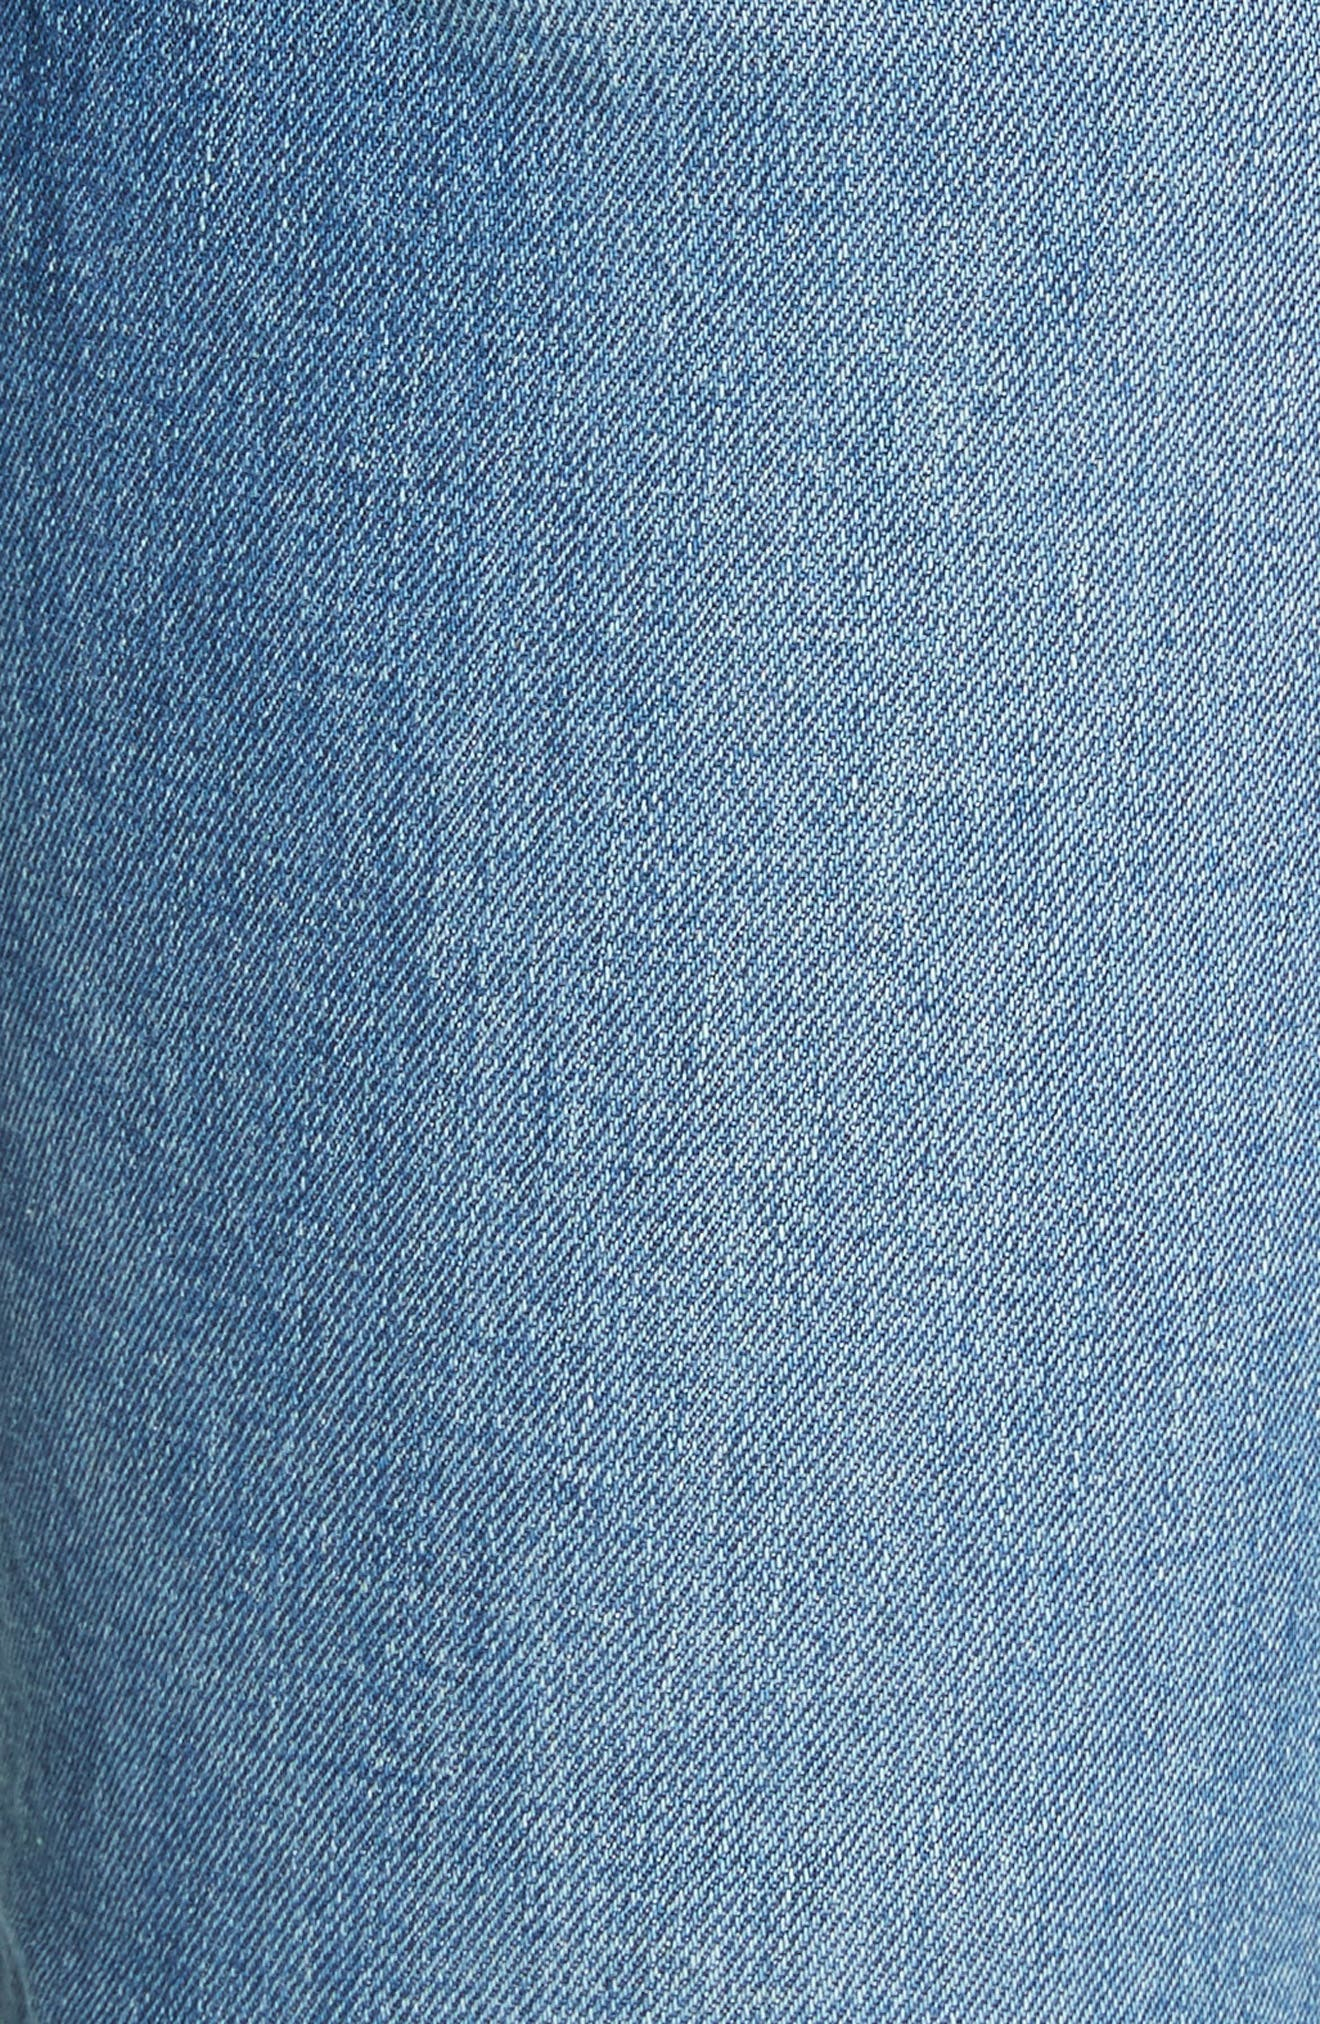 Jones Crop Jeans,                             Alternate thumbnail 5, color,